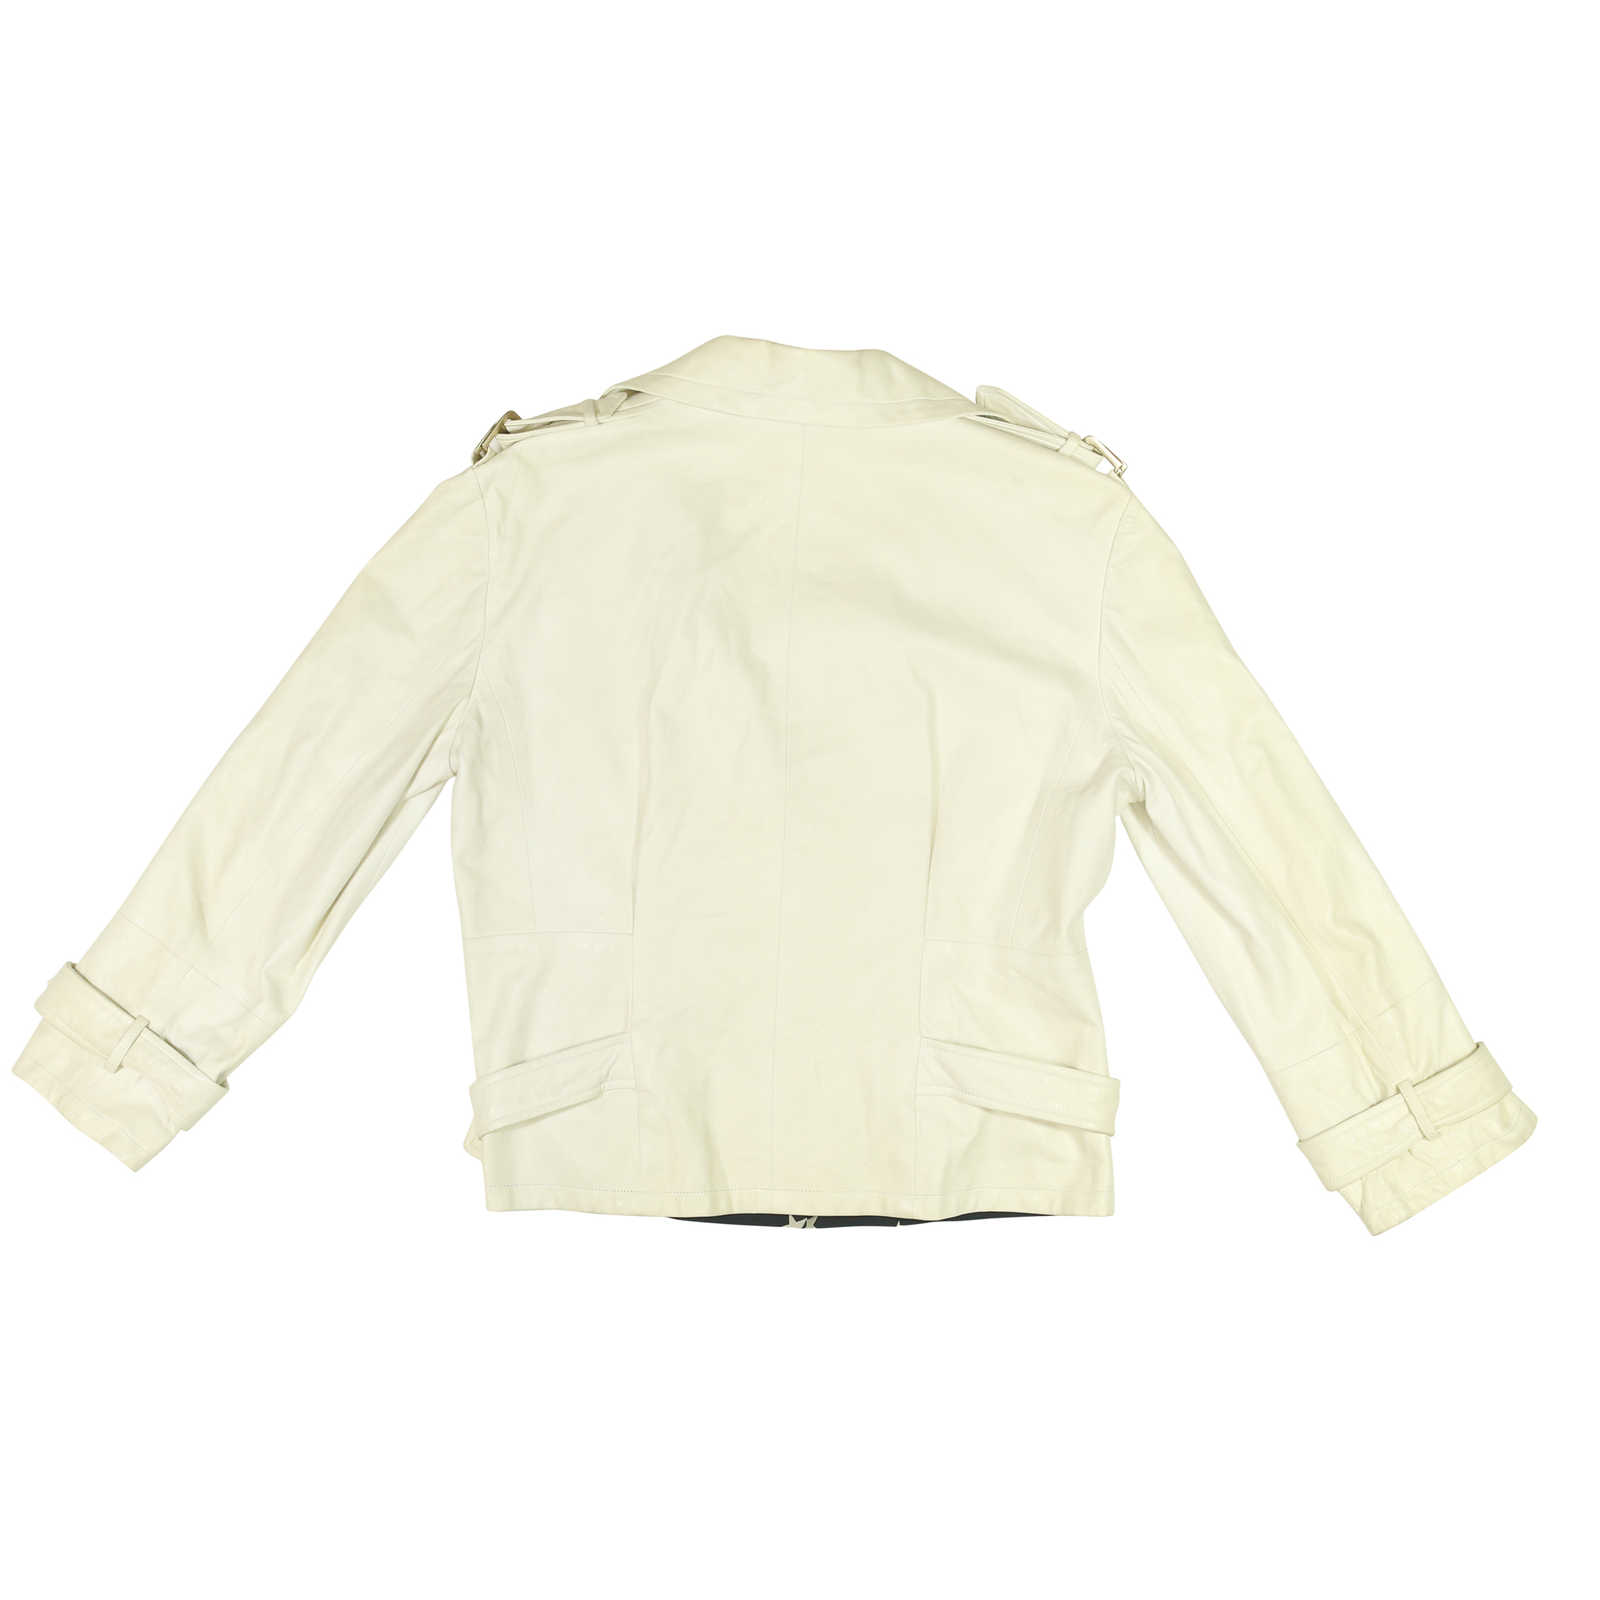 Authentic Pre Owned Chanel Leather Jacket with Buckle ...